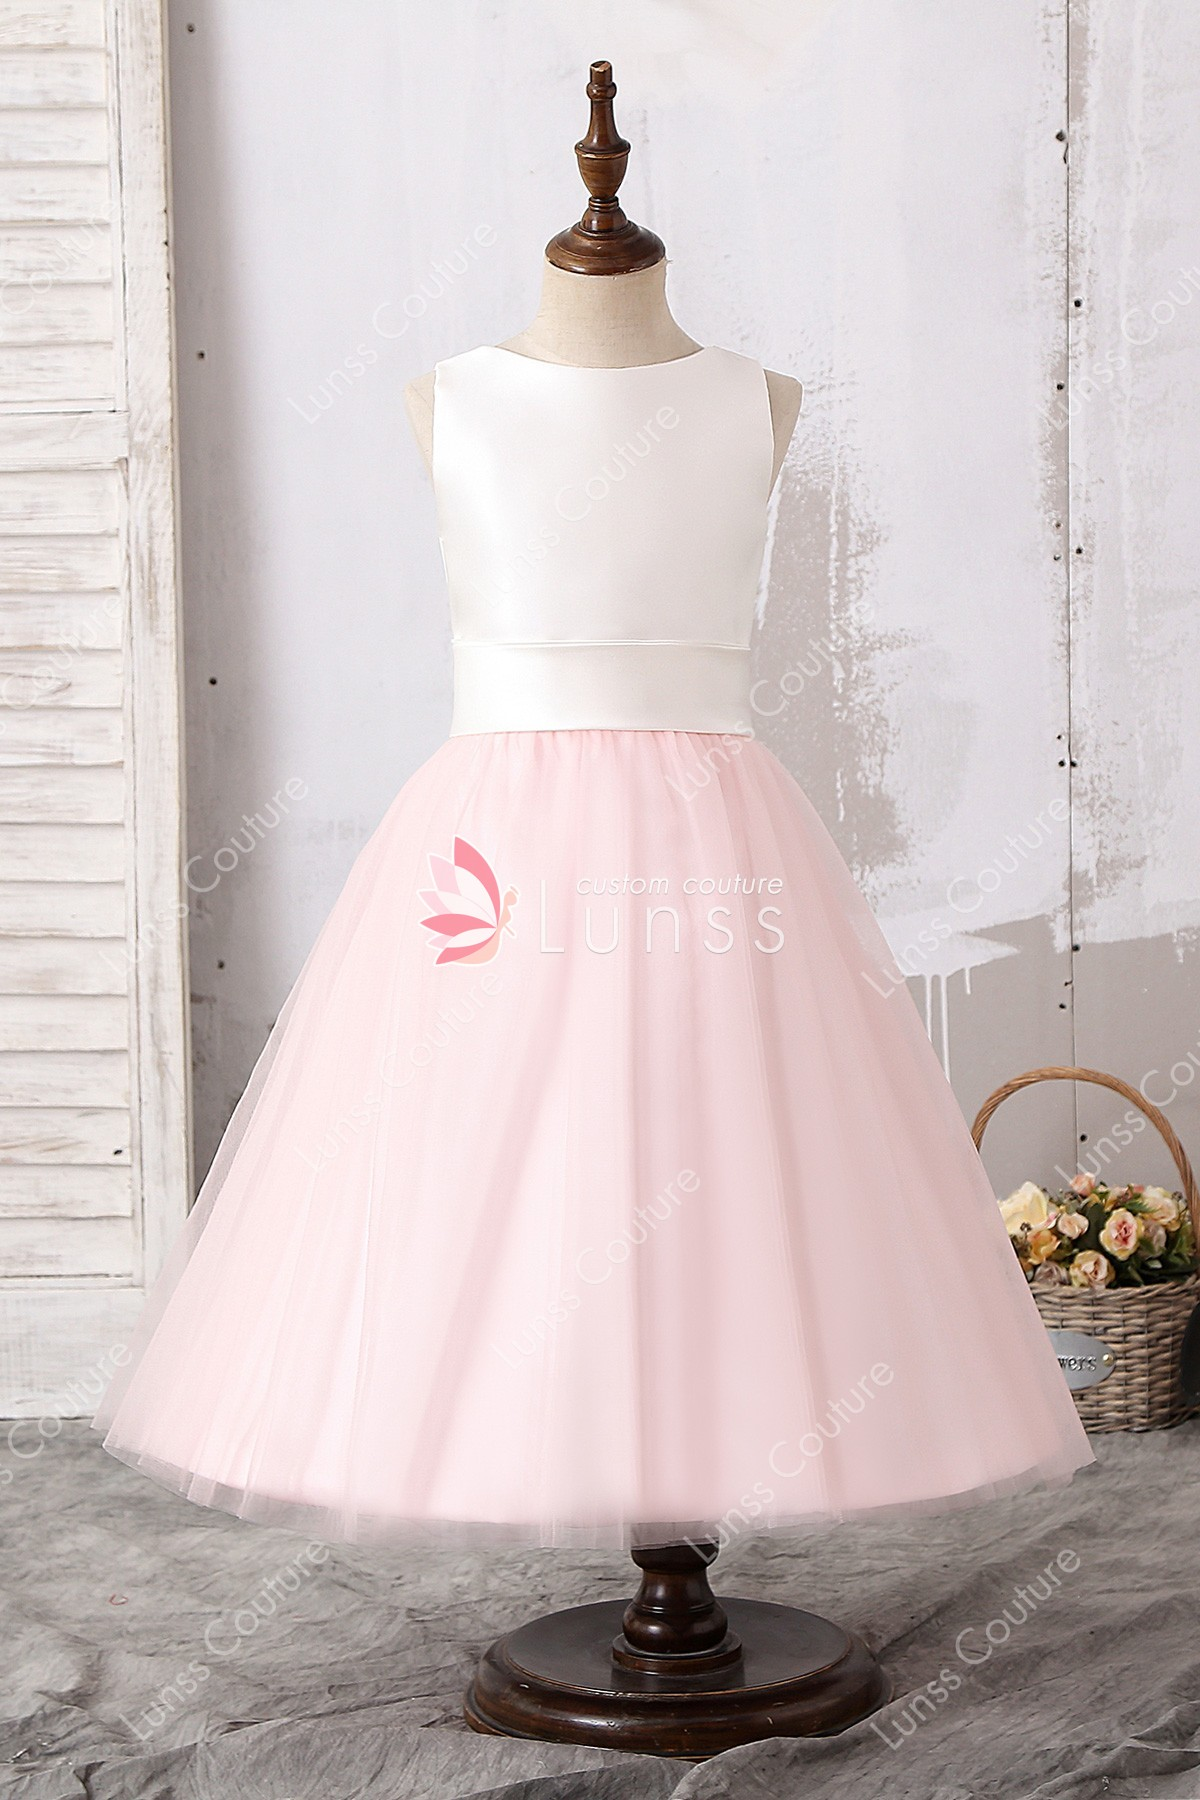 Maysange S Large Collection Of Light Pink Elegant Dresses Will Give You The Sophisticated Look Which Have Always Desired It Has An Open Back And